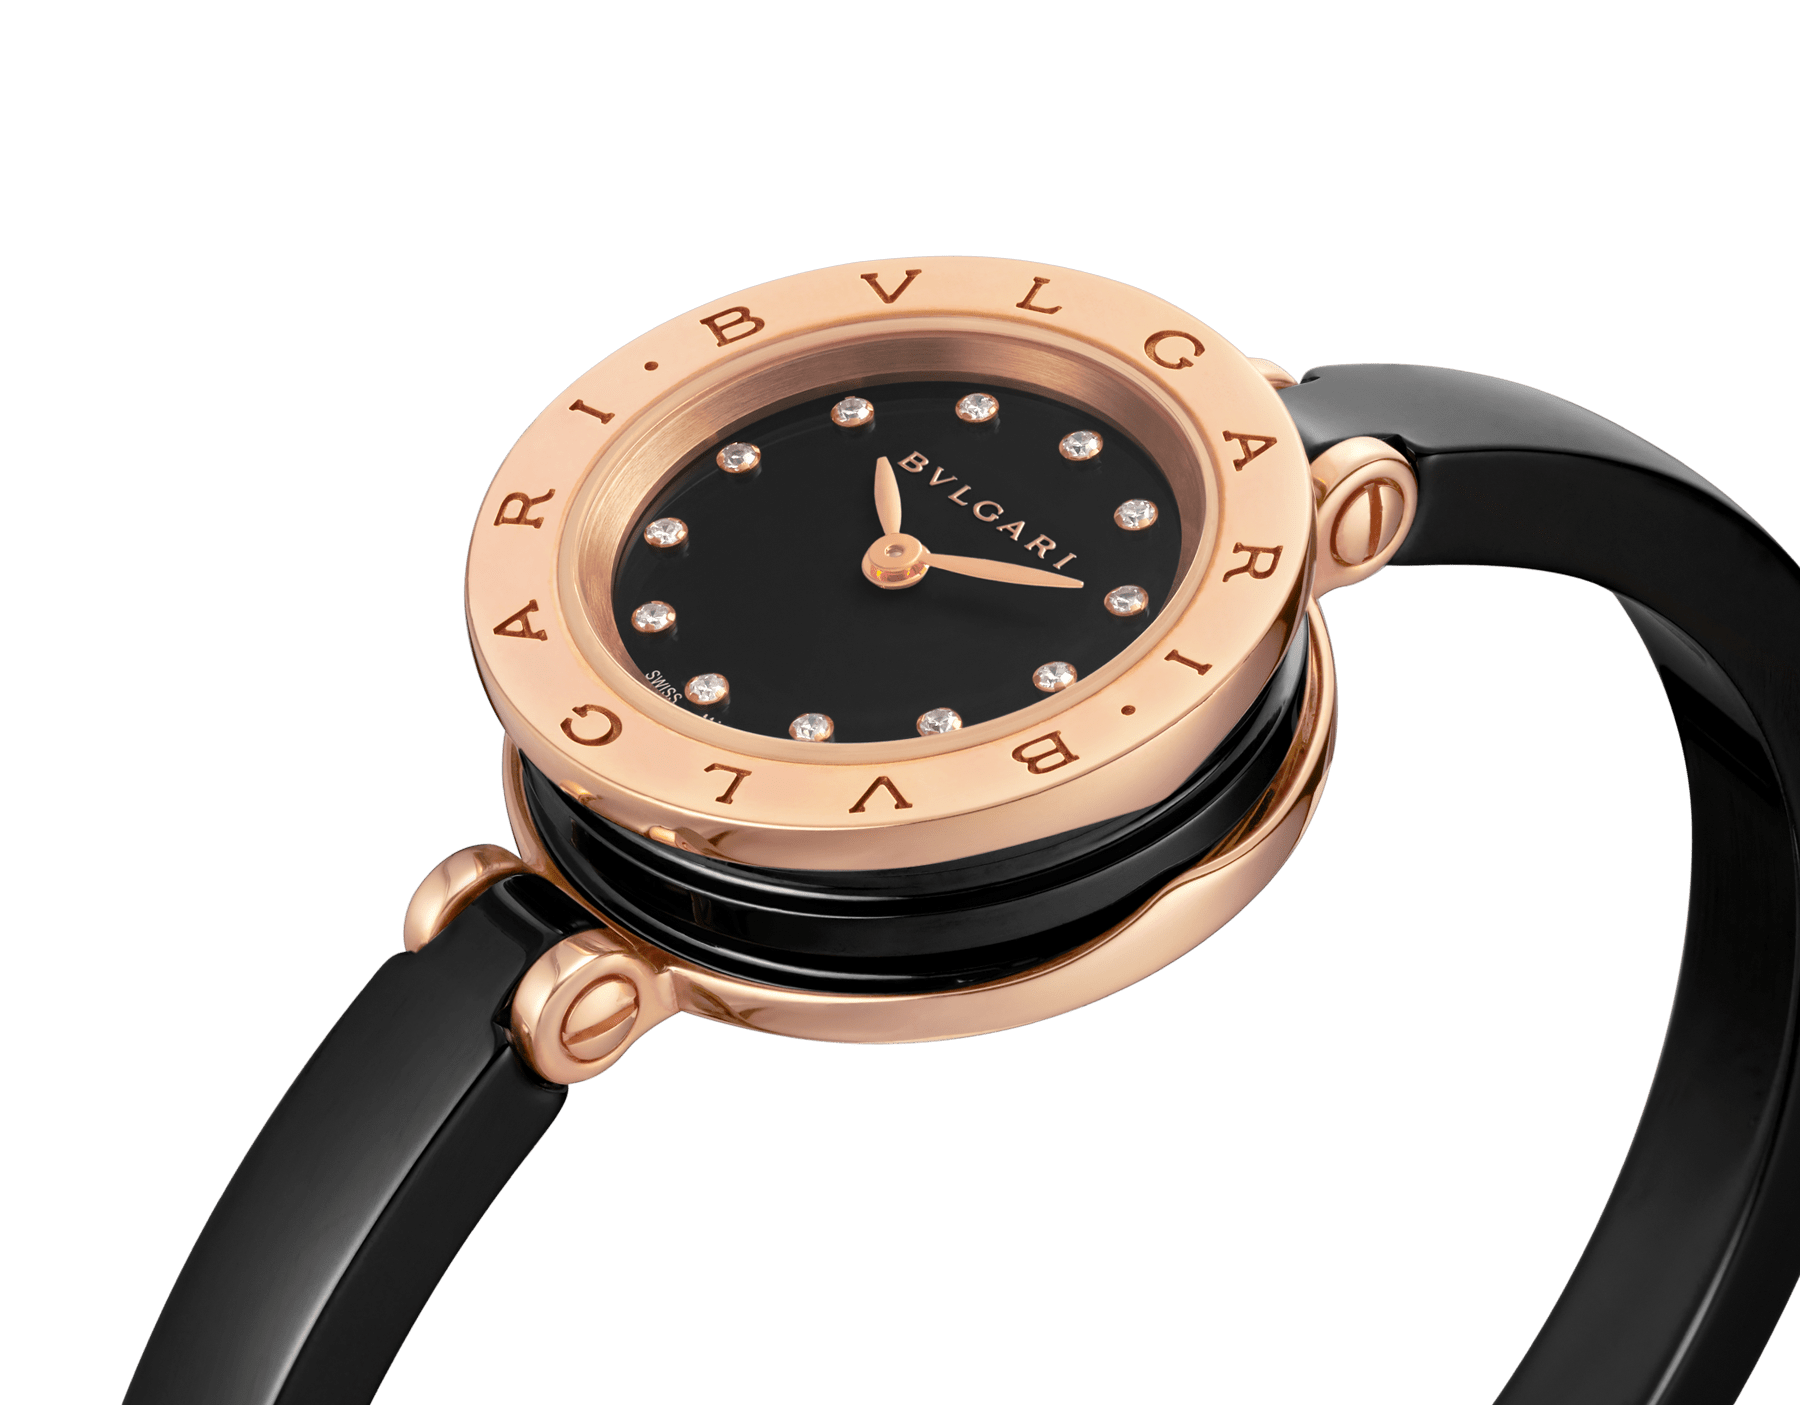 B.zero1 watch with 18 kt rose gold and black ceramic case, black lacquered dial set with diamond indexes, black ceramic bangle and 18 kt rose gold clasp. B01watch-black-black-dial2 image 2